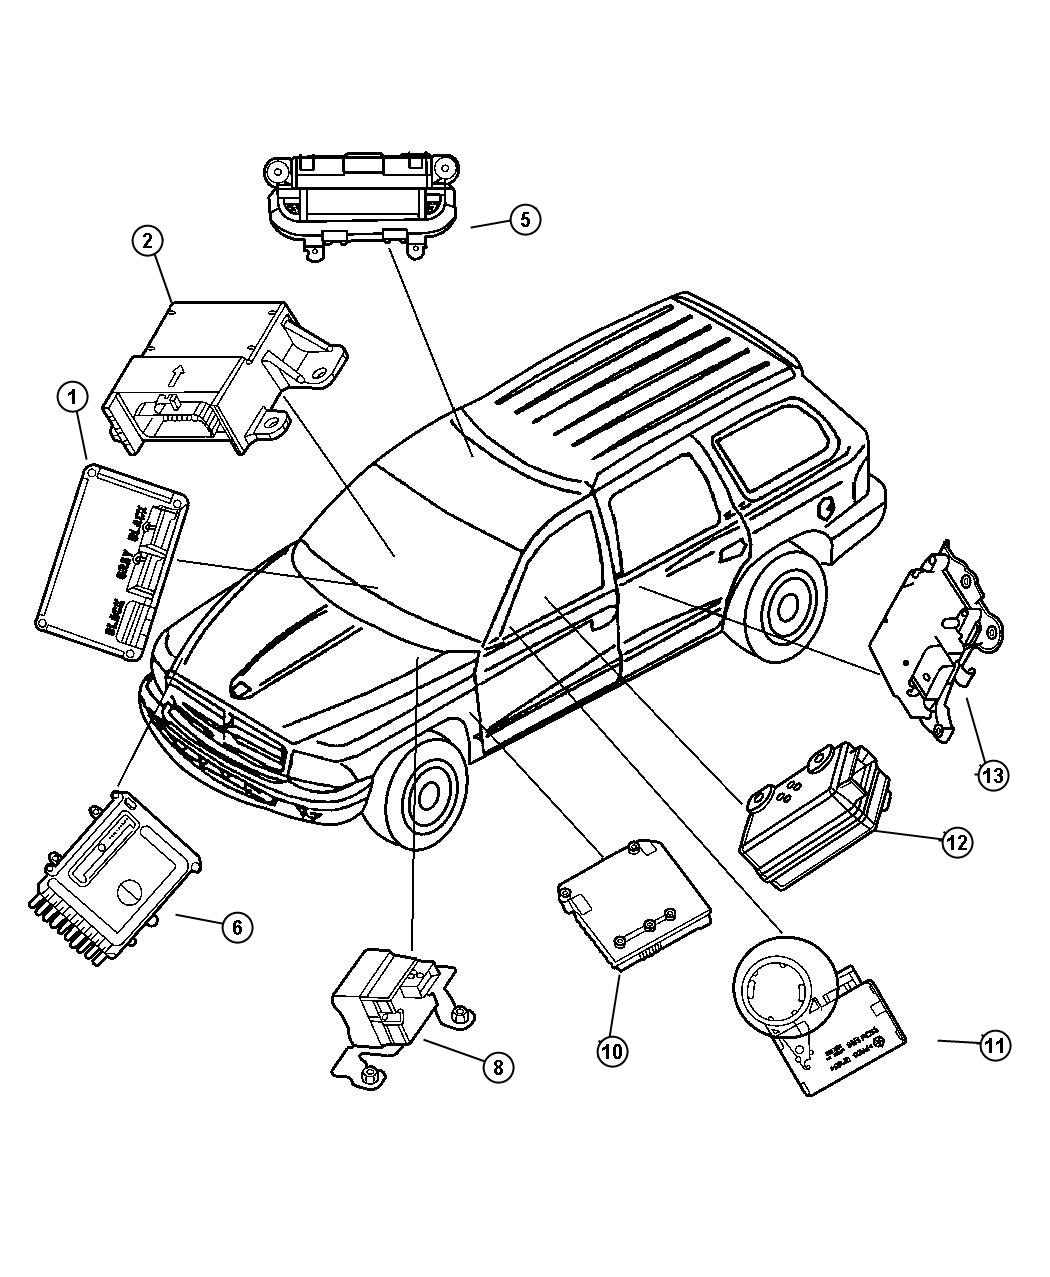 2002 dodge durango wiring diagram 2002 engine image for user